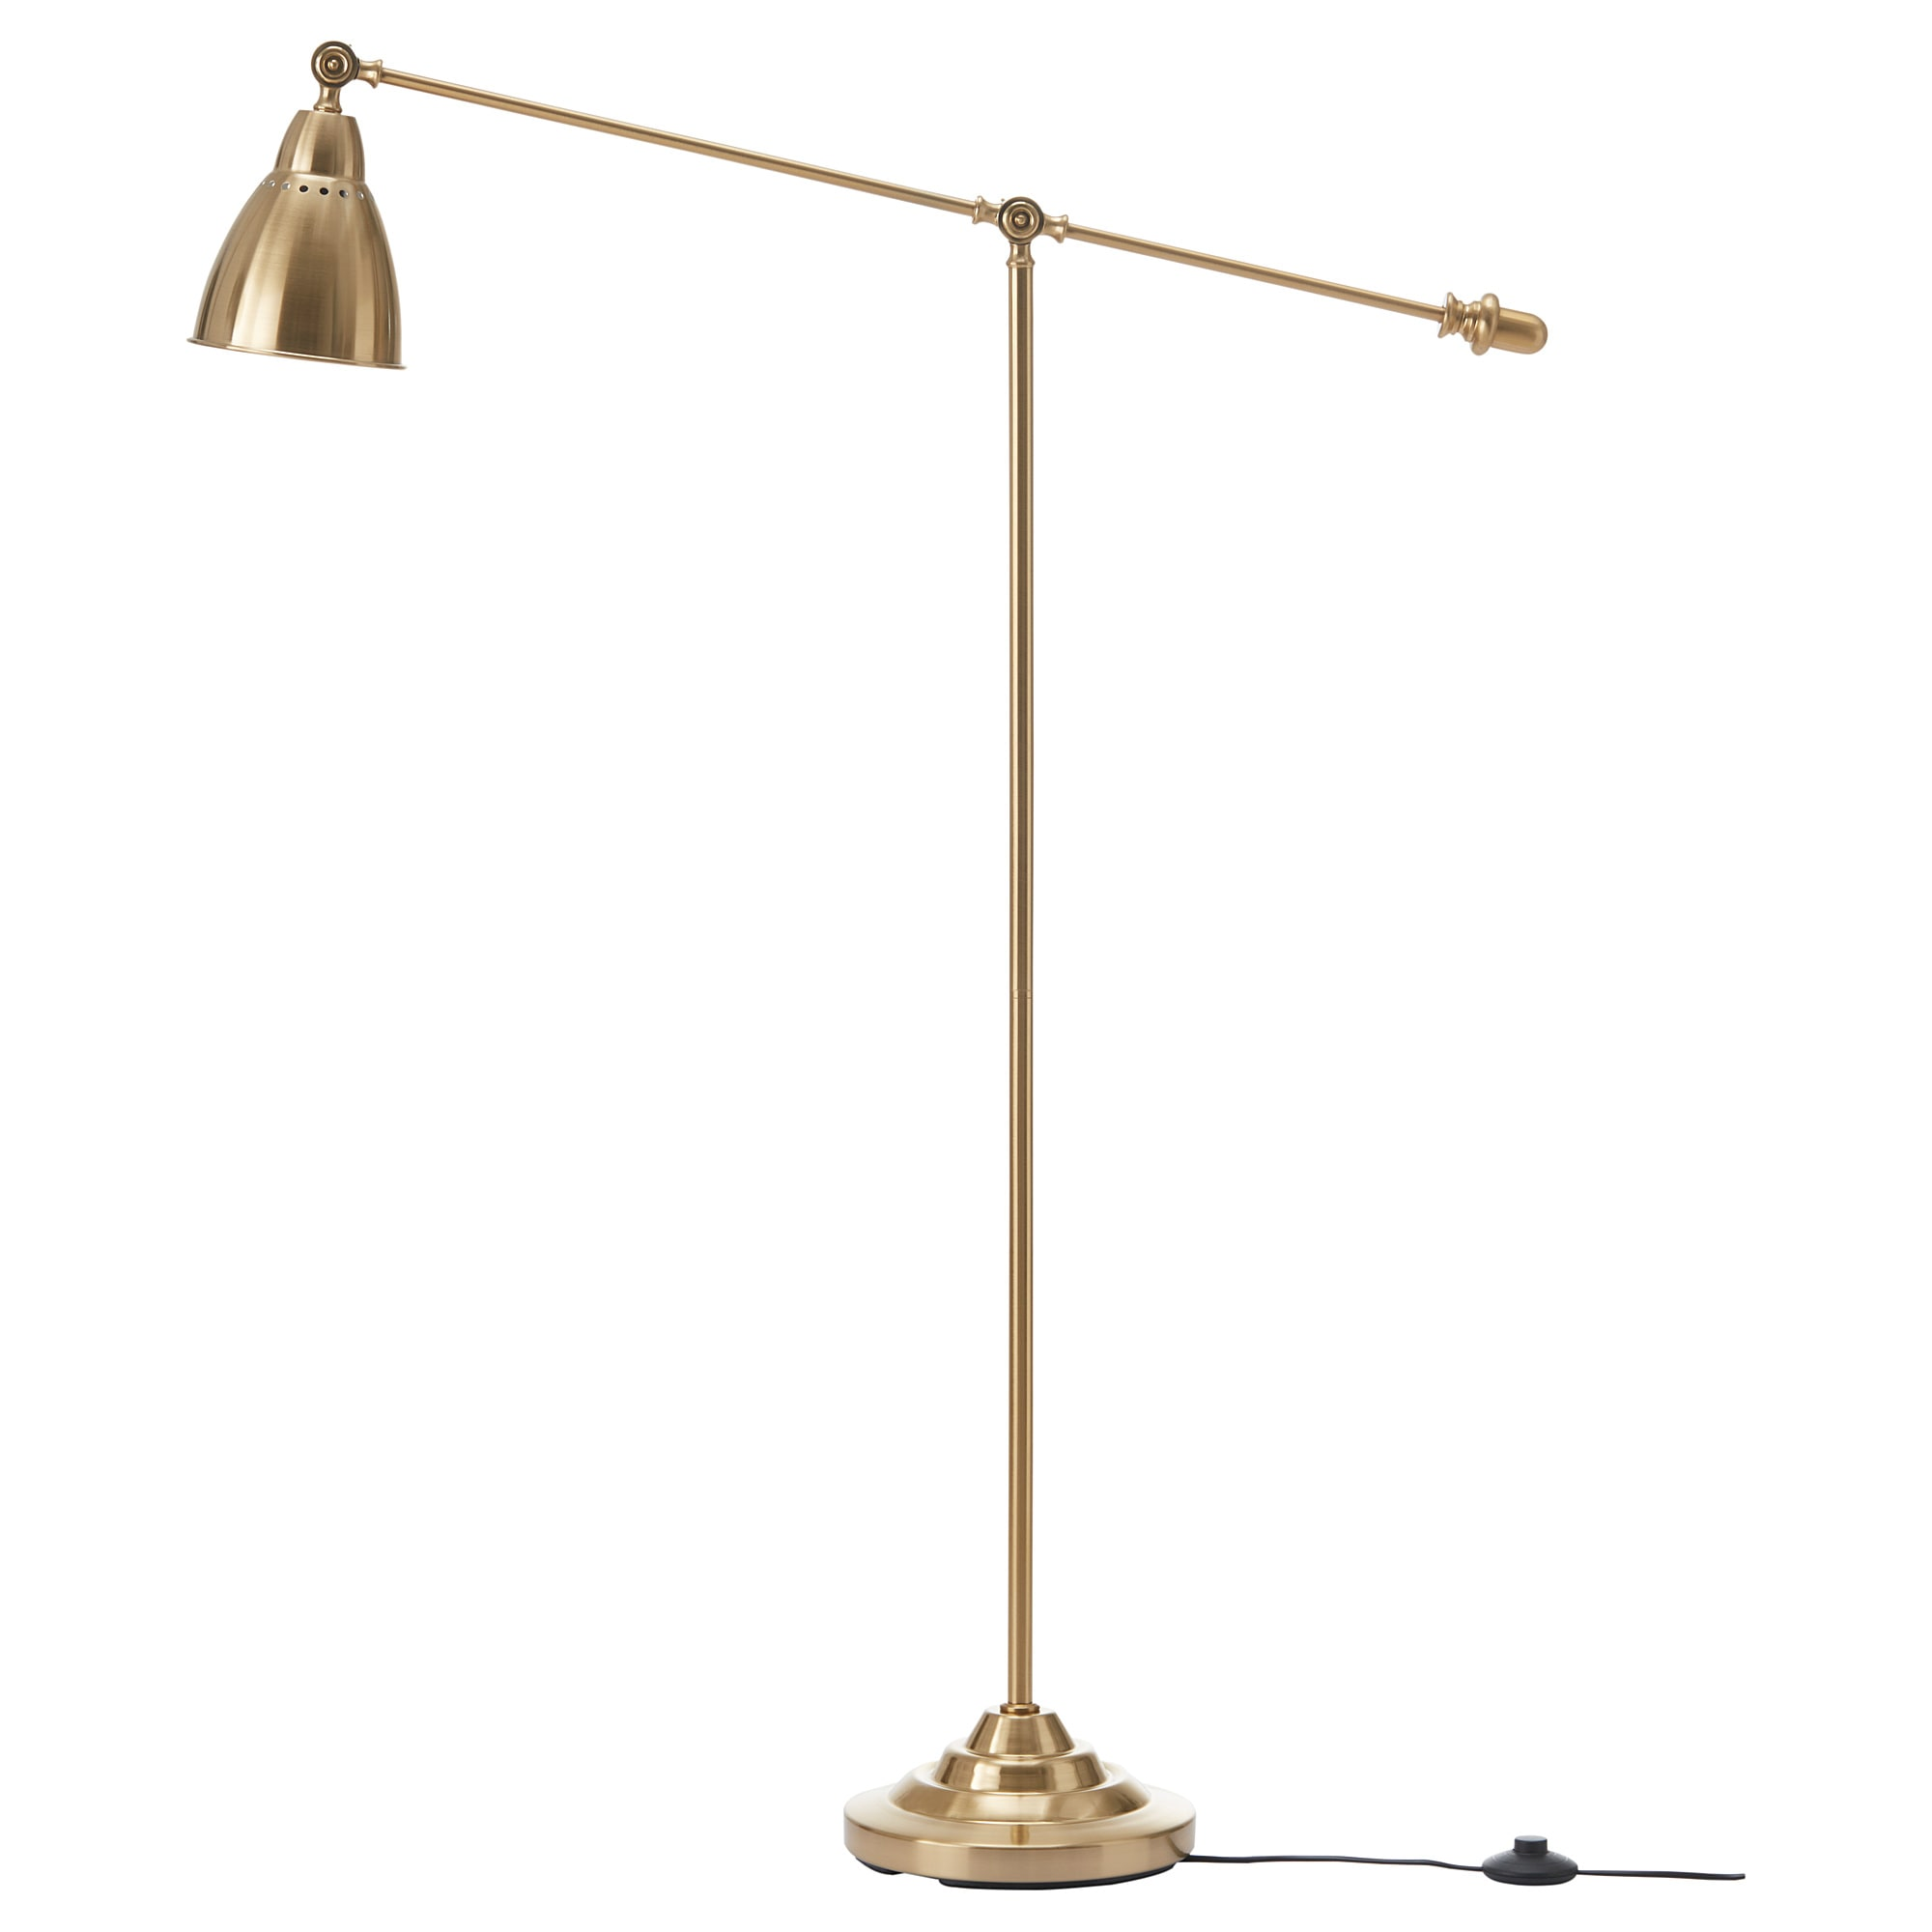 BAROMETER floor/reading lamp with LED bulb, brass color Max.: 15 W